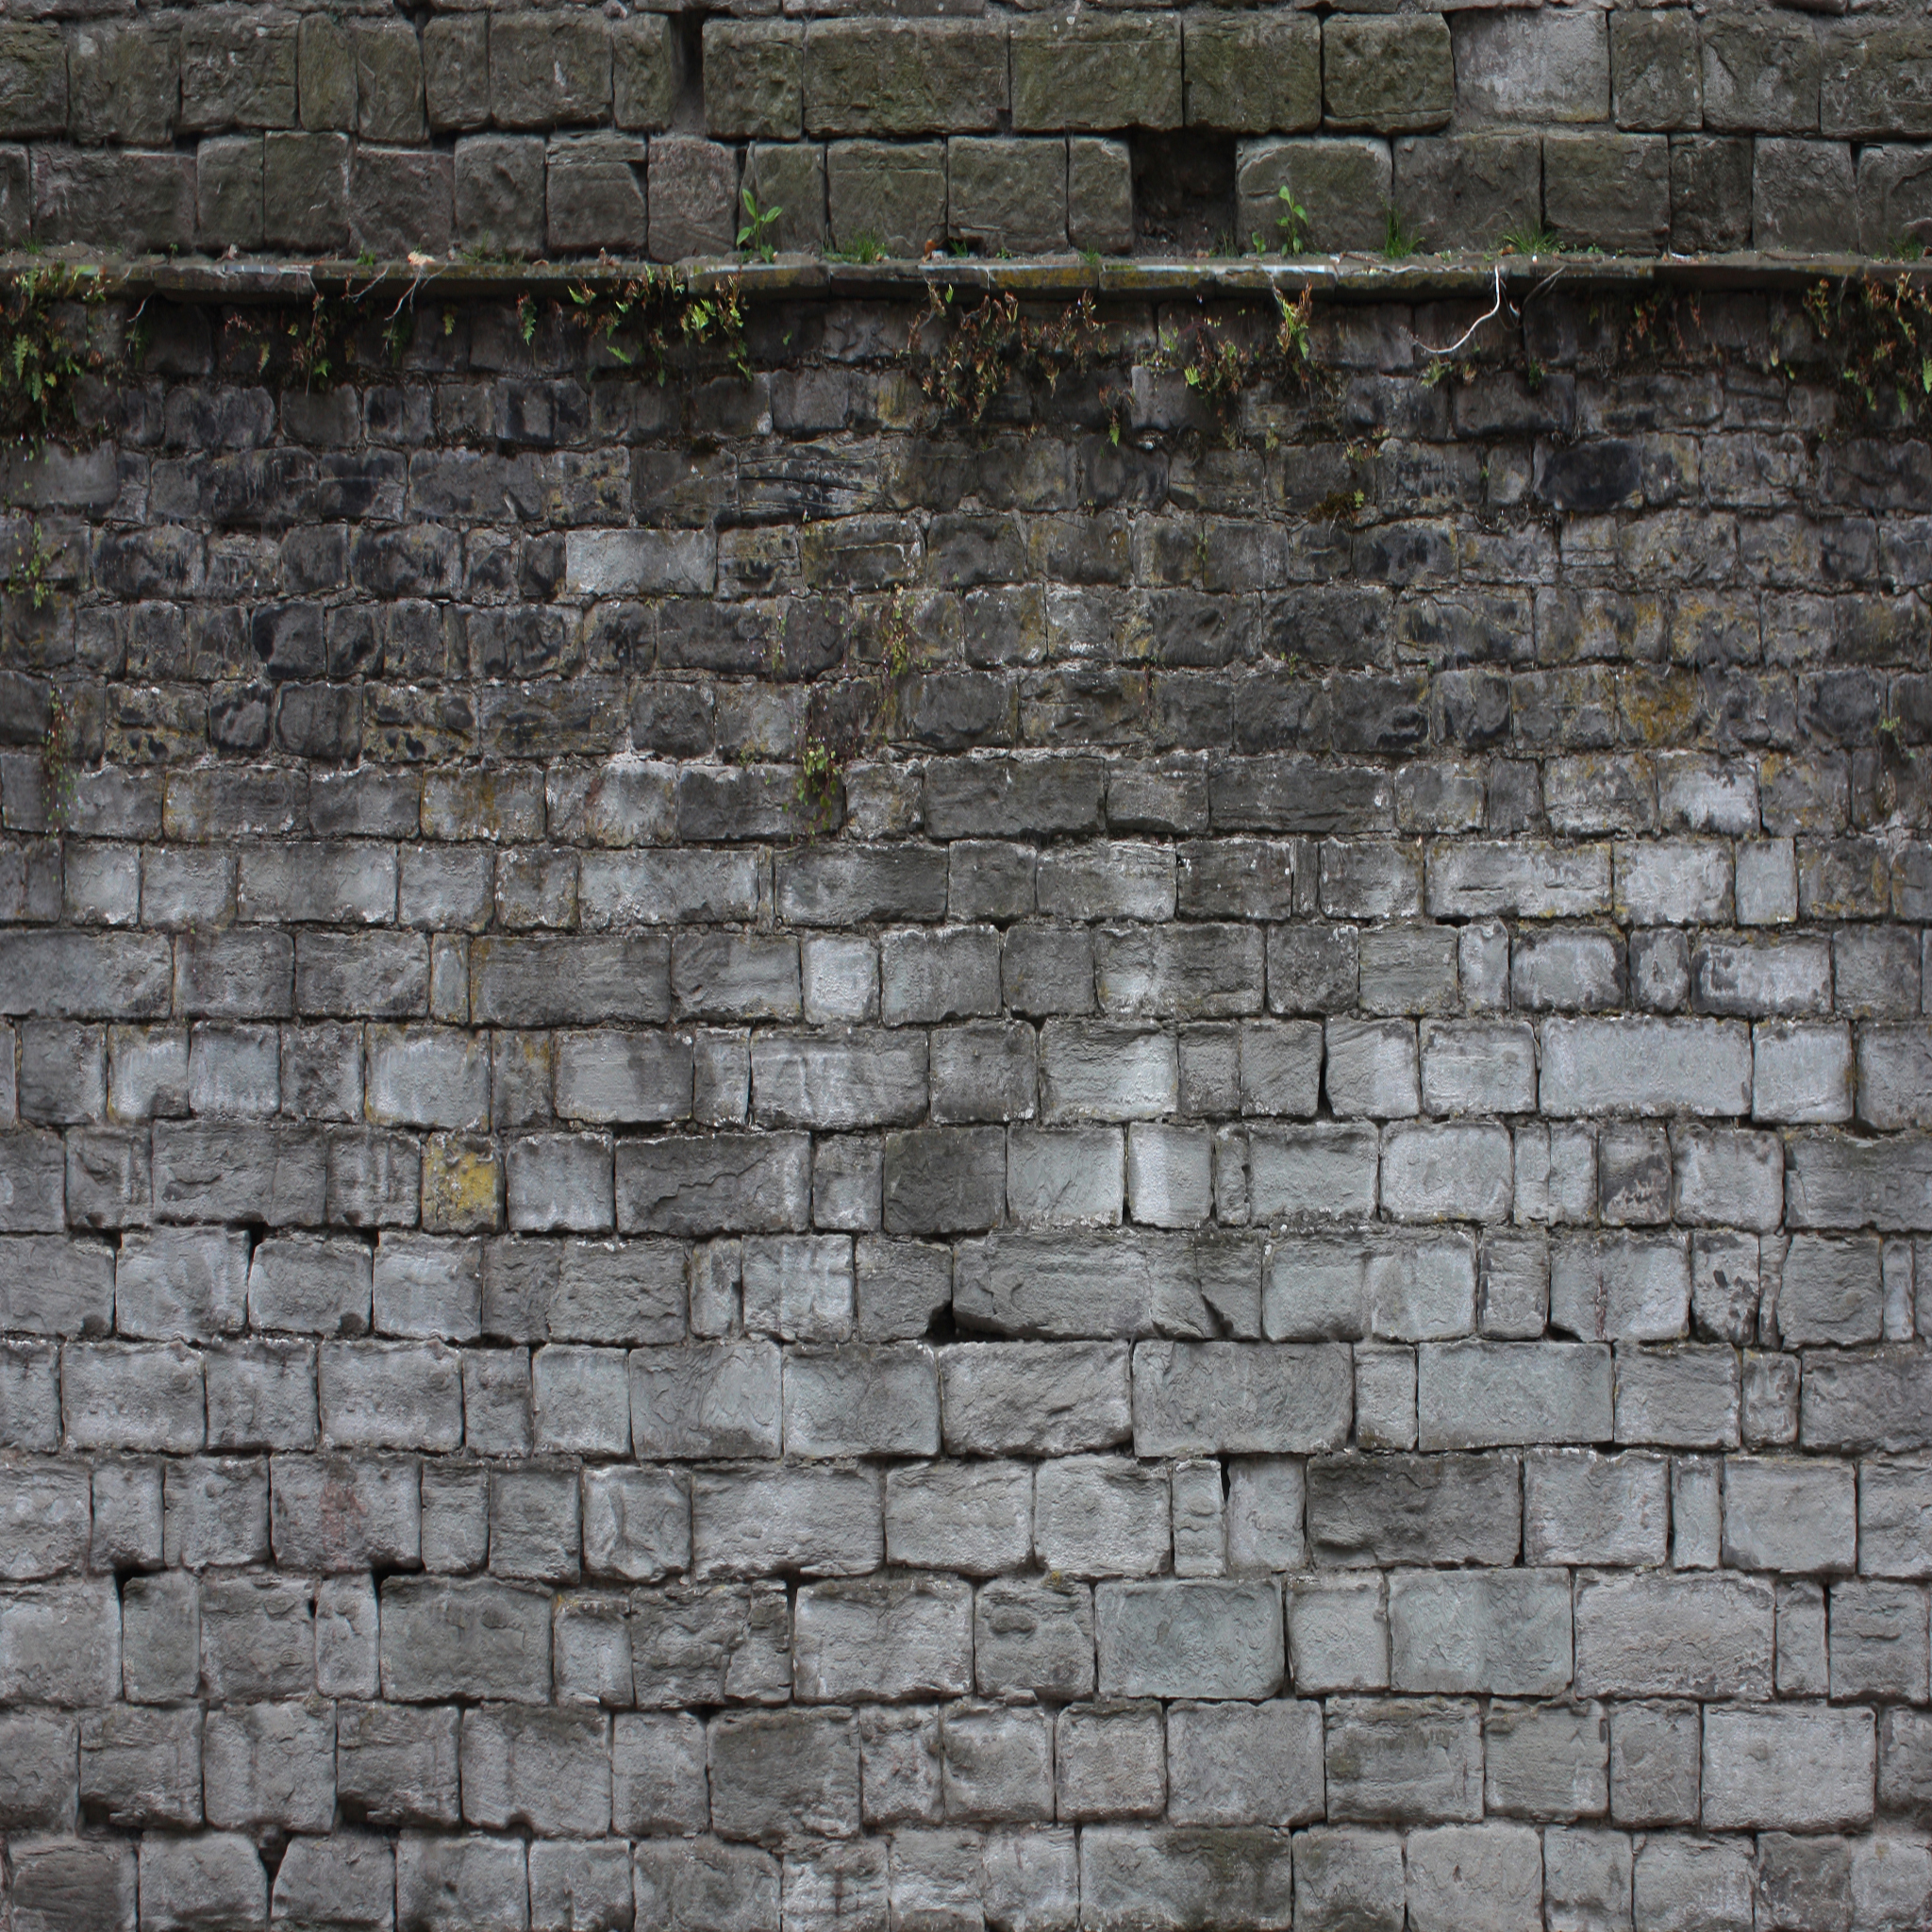 Download The Groutless Brick Texture V3 At FrogModel For Free